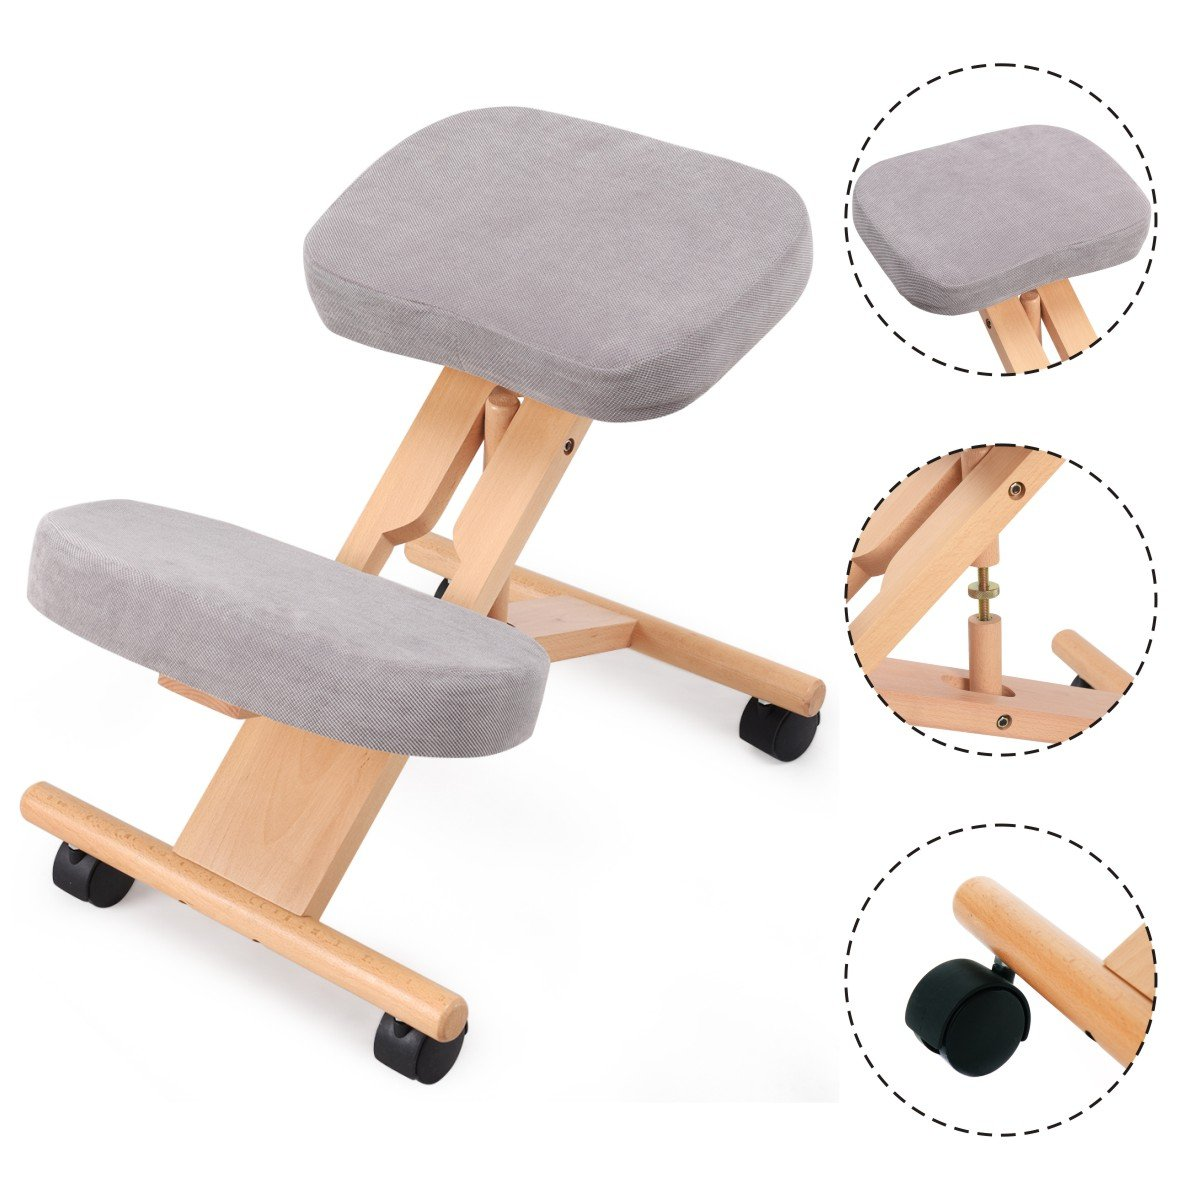 COSTWAY Ergonomic Kneeling Chair Wooden Orthopaedic Stool Posture Frame Seat Health Care (Grey)